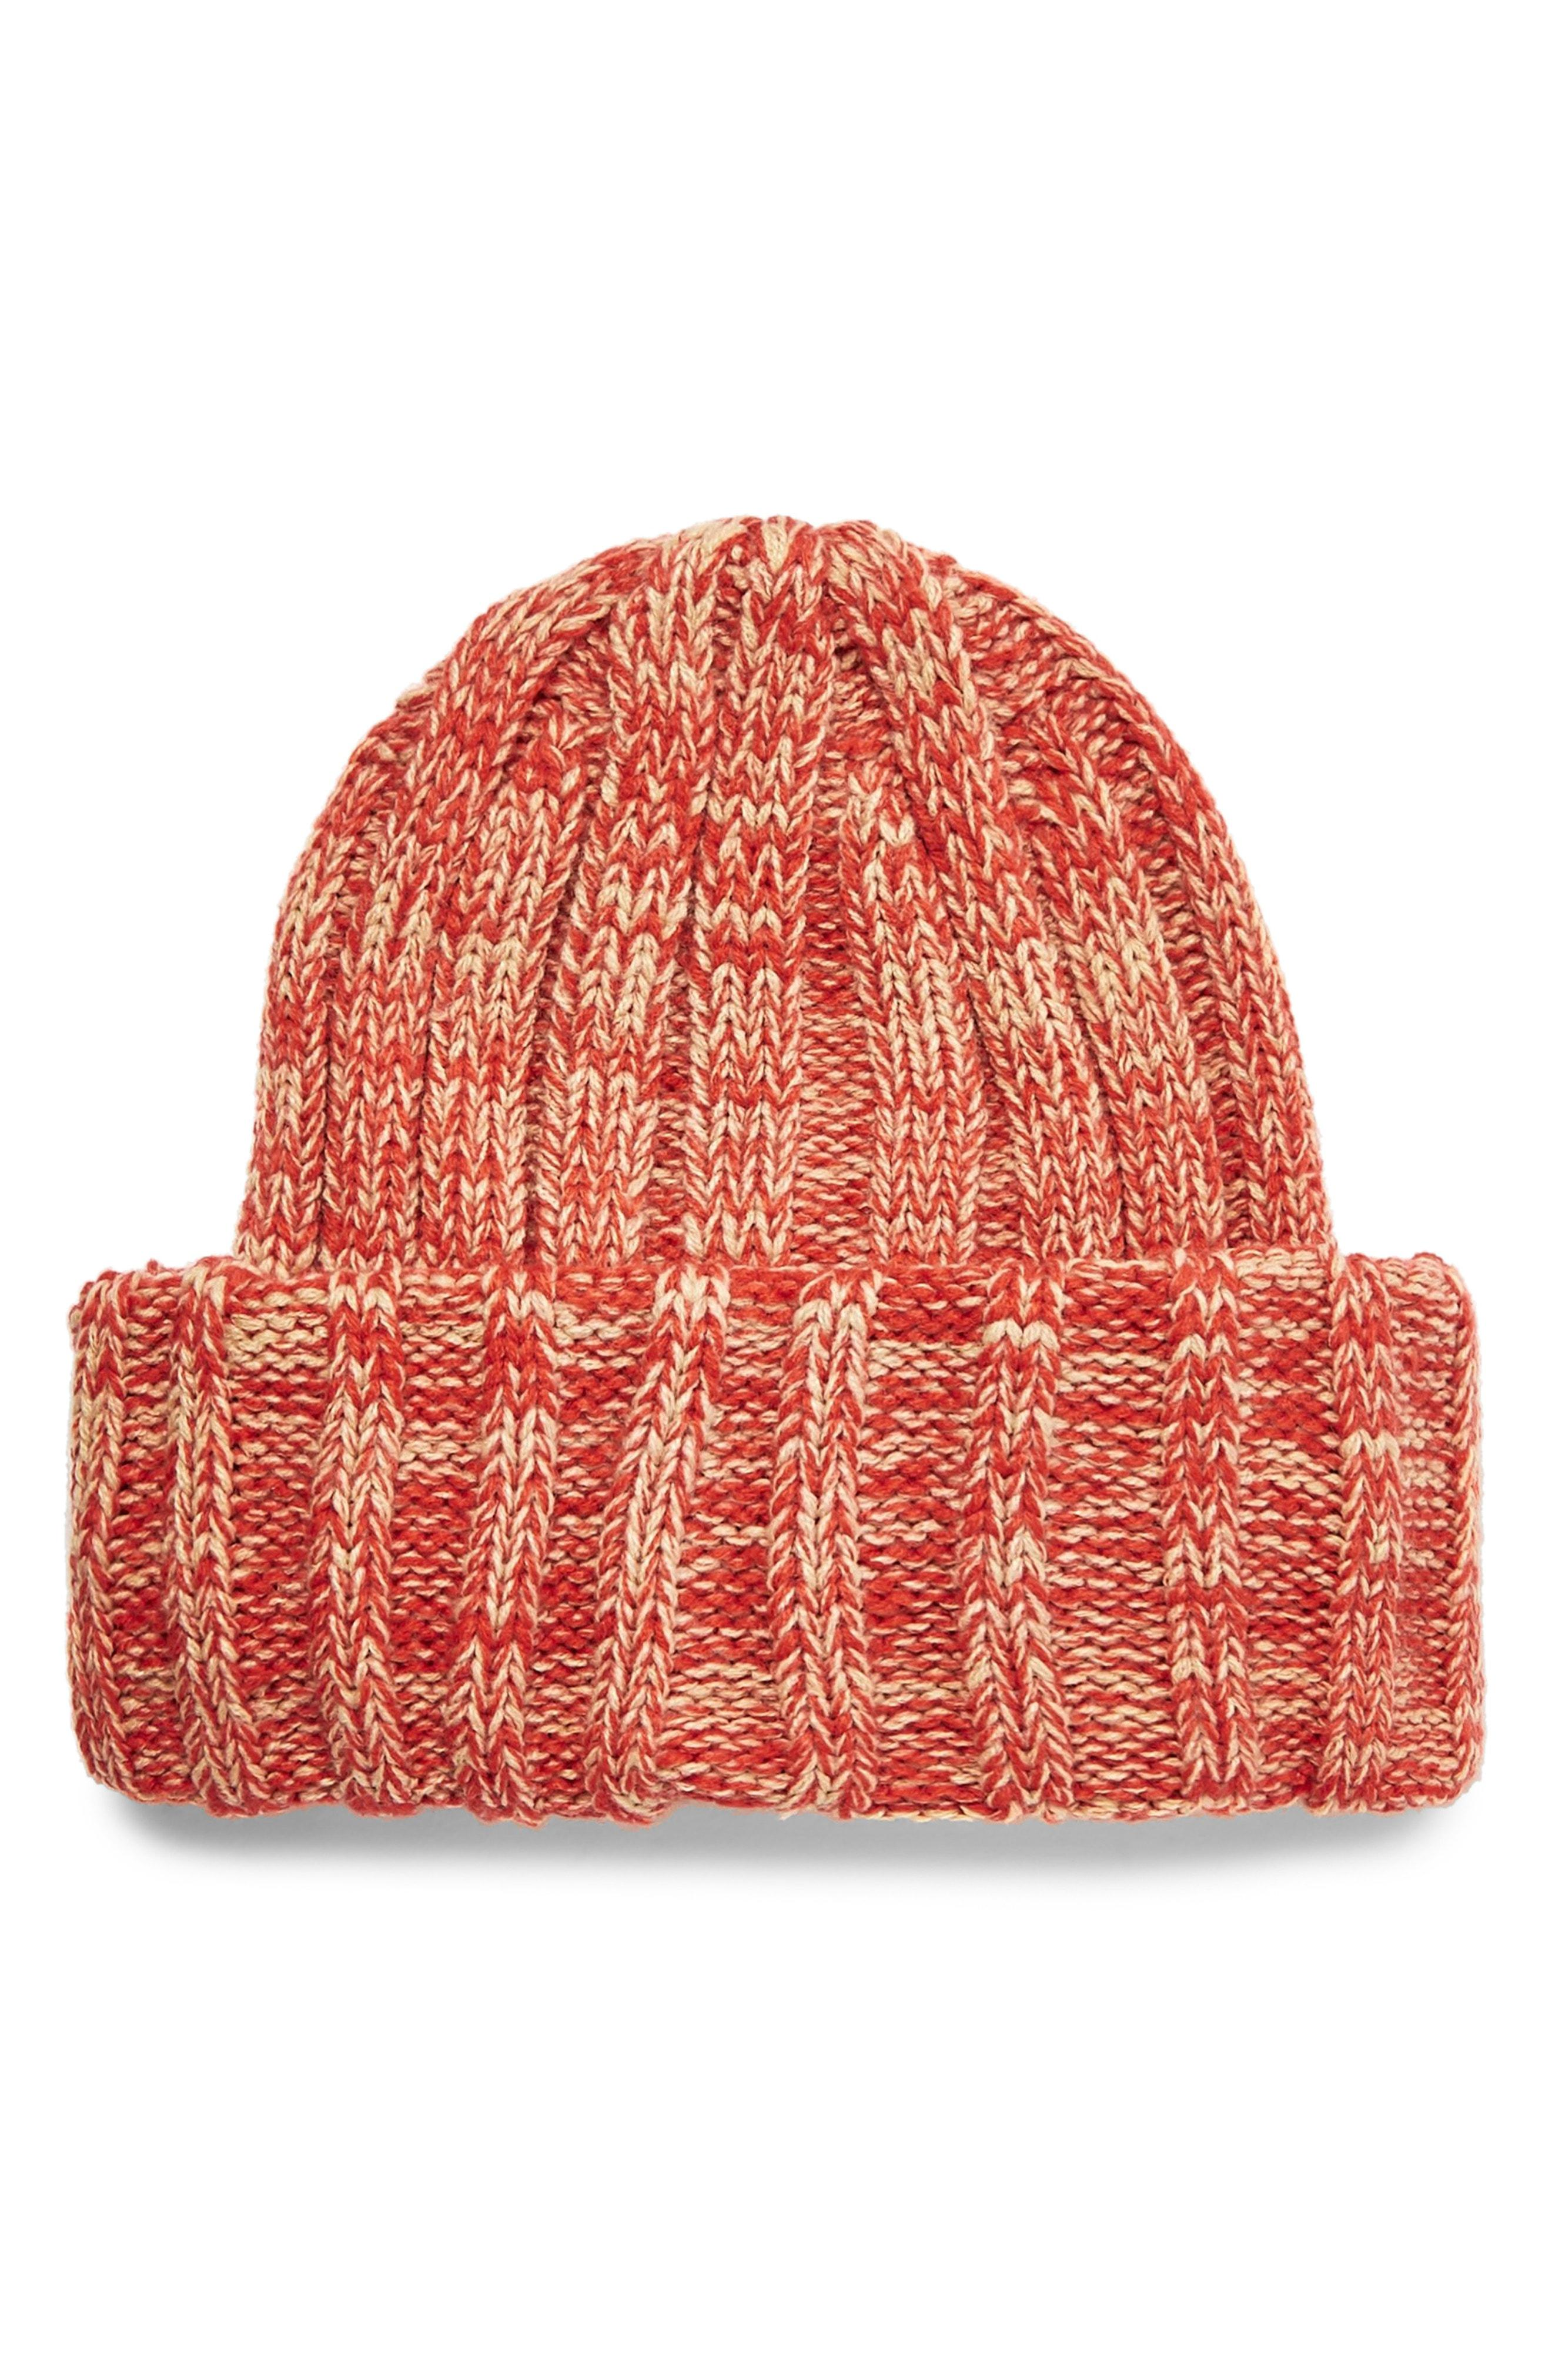 7d3f7766be1 Lyst - Topman Oversize Rib Beanie - in Red for Men